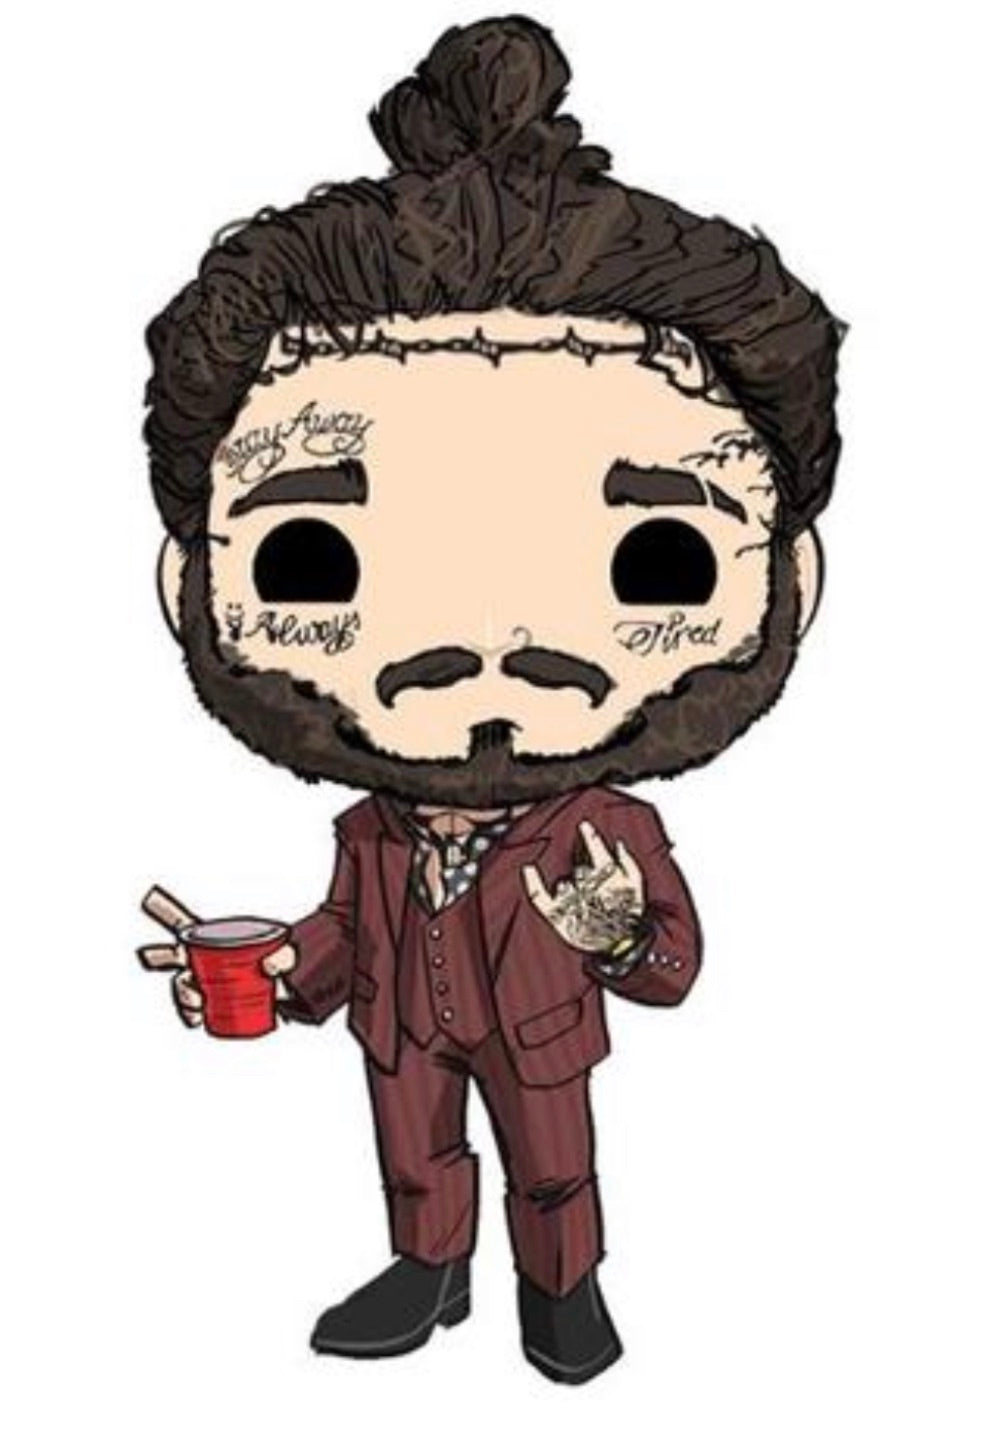 (Preorder) Pop! Rocks: Post Malone